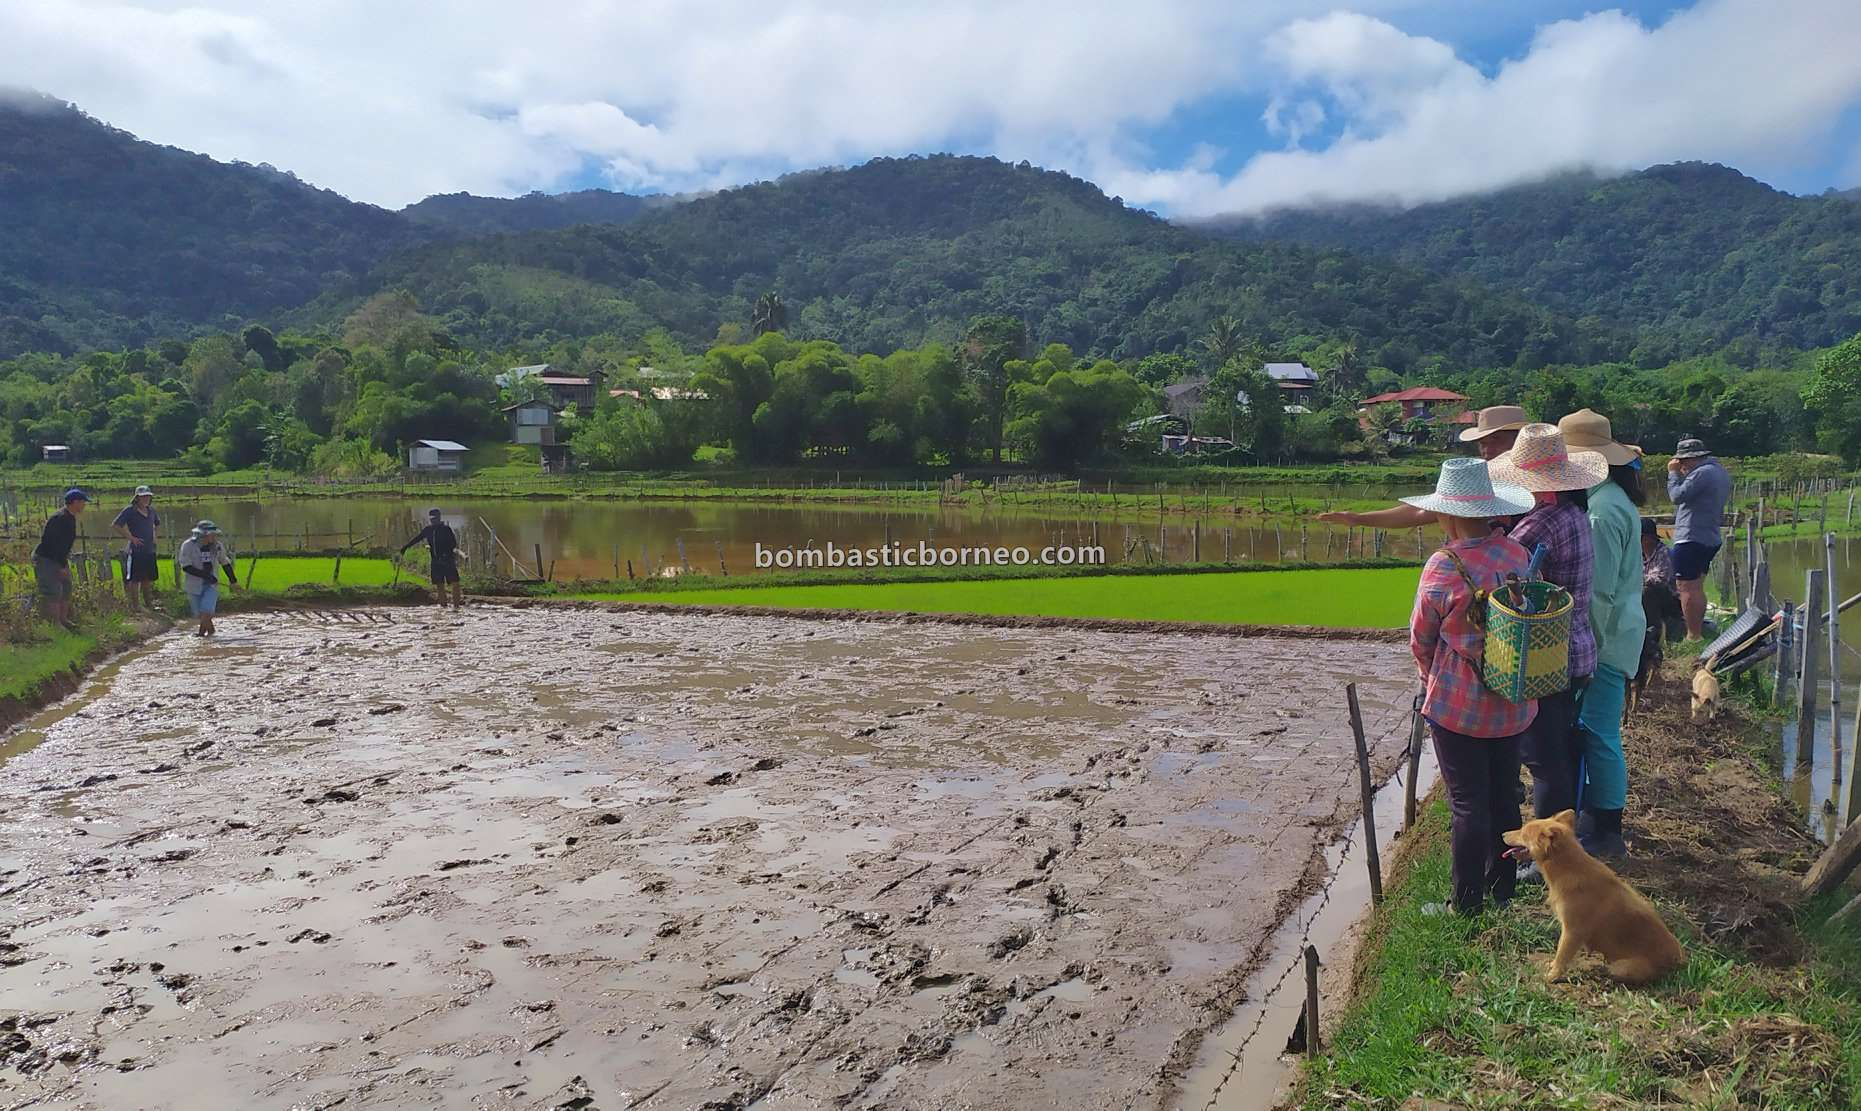 organic rice, paddy fields, traditional, authentic, backpackers, Long Langai, Malaysia, Lun Bawang, native, Orang Ulu, Tourism, tourist attraction, 婆罗洲原住民部落, 巴卡拉兰水稻种植, 砂拉越内陆高原